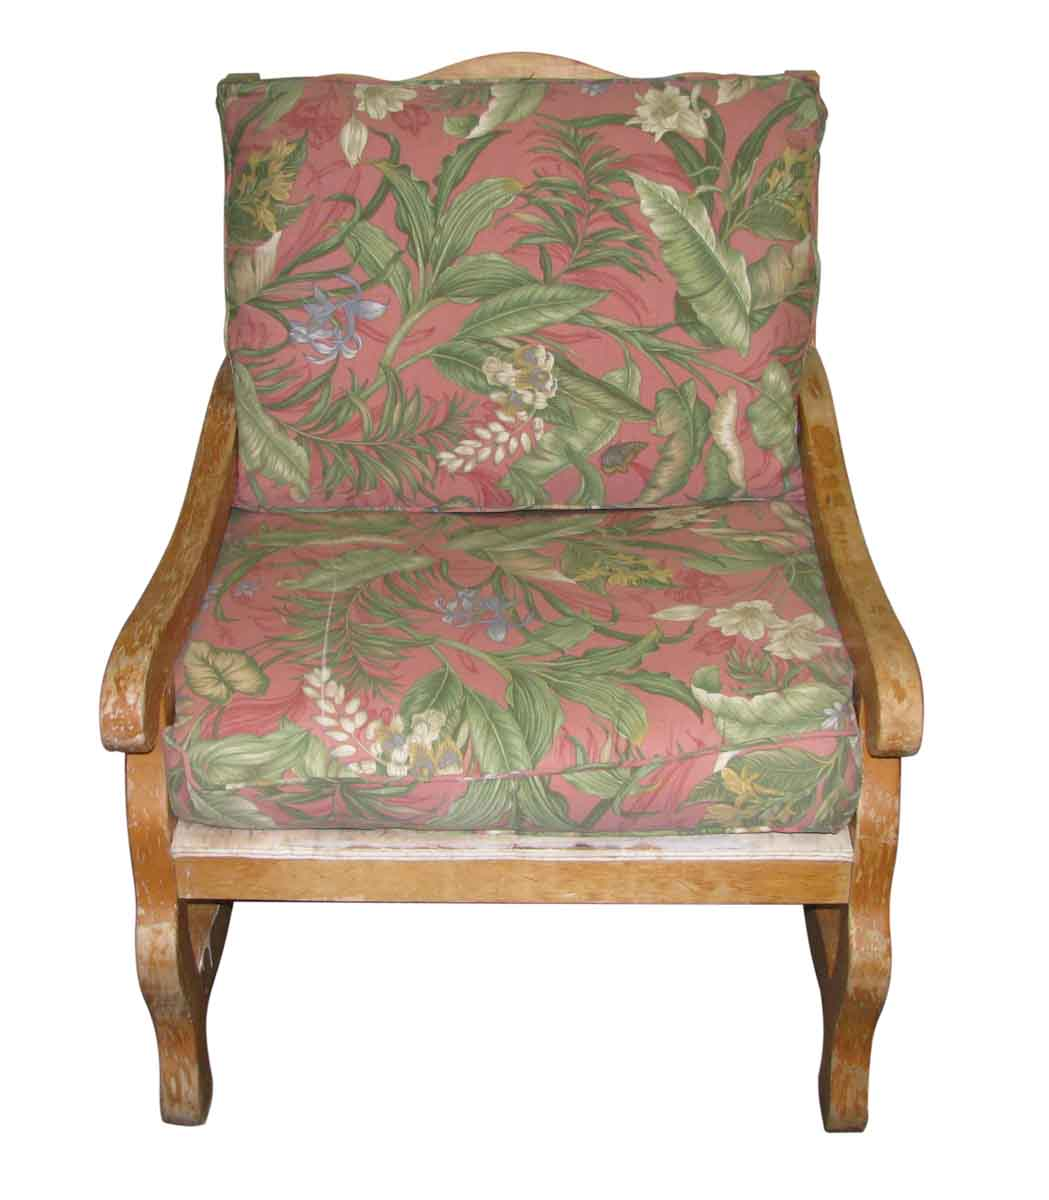 Big Comfortable Chairs Large Comfy South Florida Style Porch Chairs Olde Good